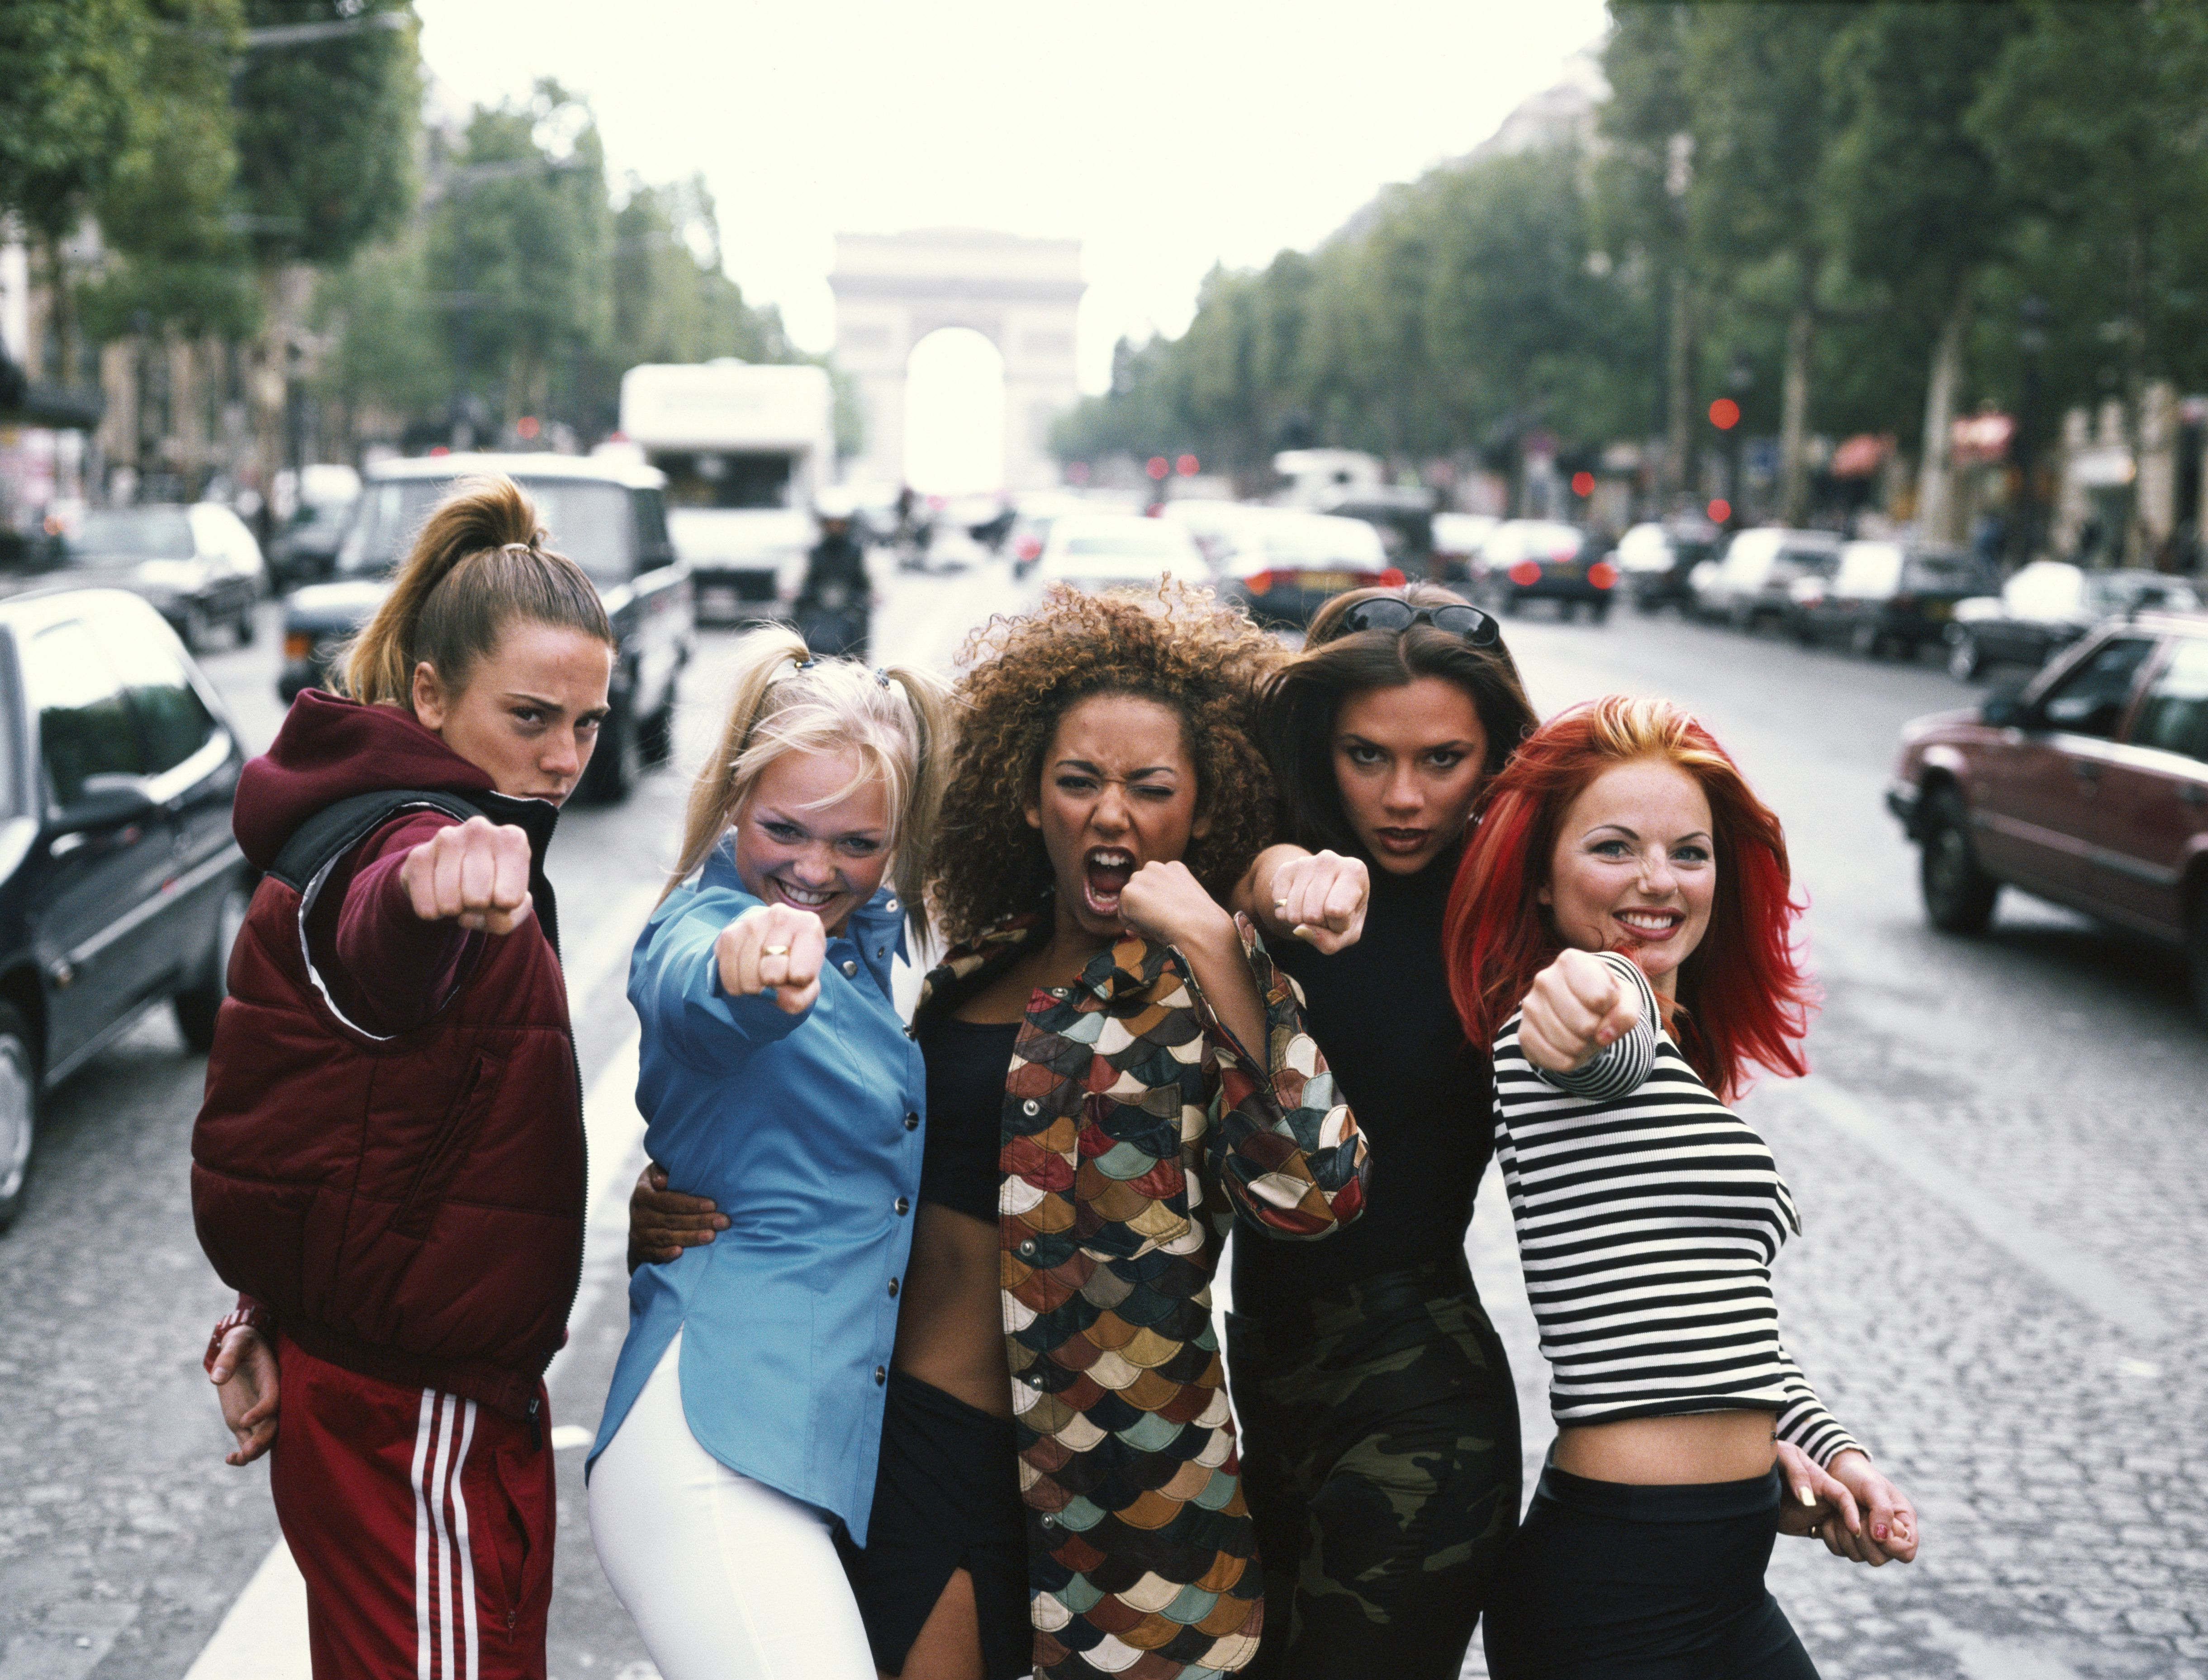 English pop group The Spice Girls, Paris, September 1996. Left to right: Melanie Chisholm, Emma Bunton, Melanie Brown, Victoria Beckham and Geri Halliwell aka Sporty, Baby, Scary, Posh and Ginger Spice. (Photo by Tim Roney/Getty Images)